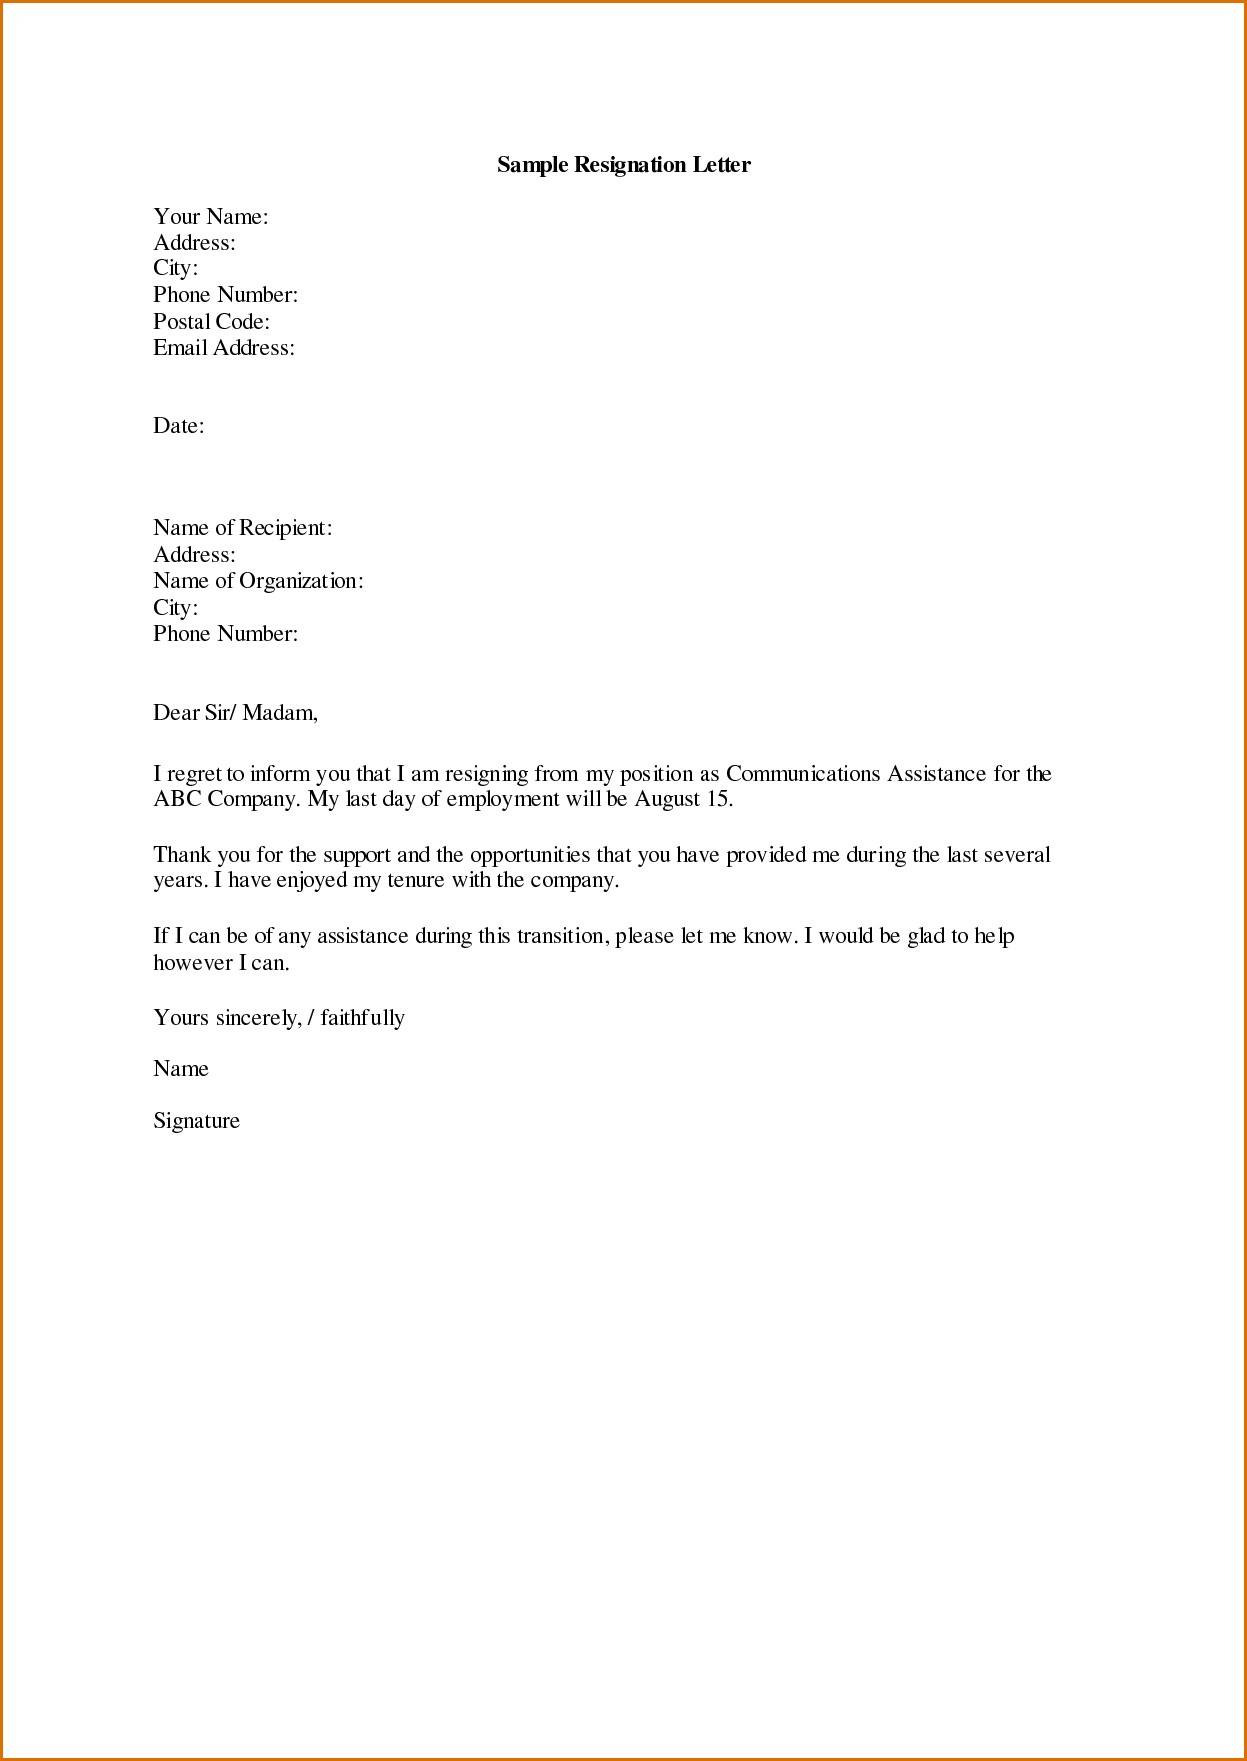 Resignation Letter Template Singapore